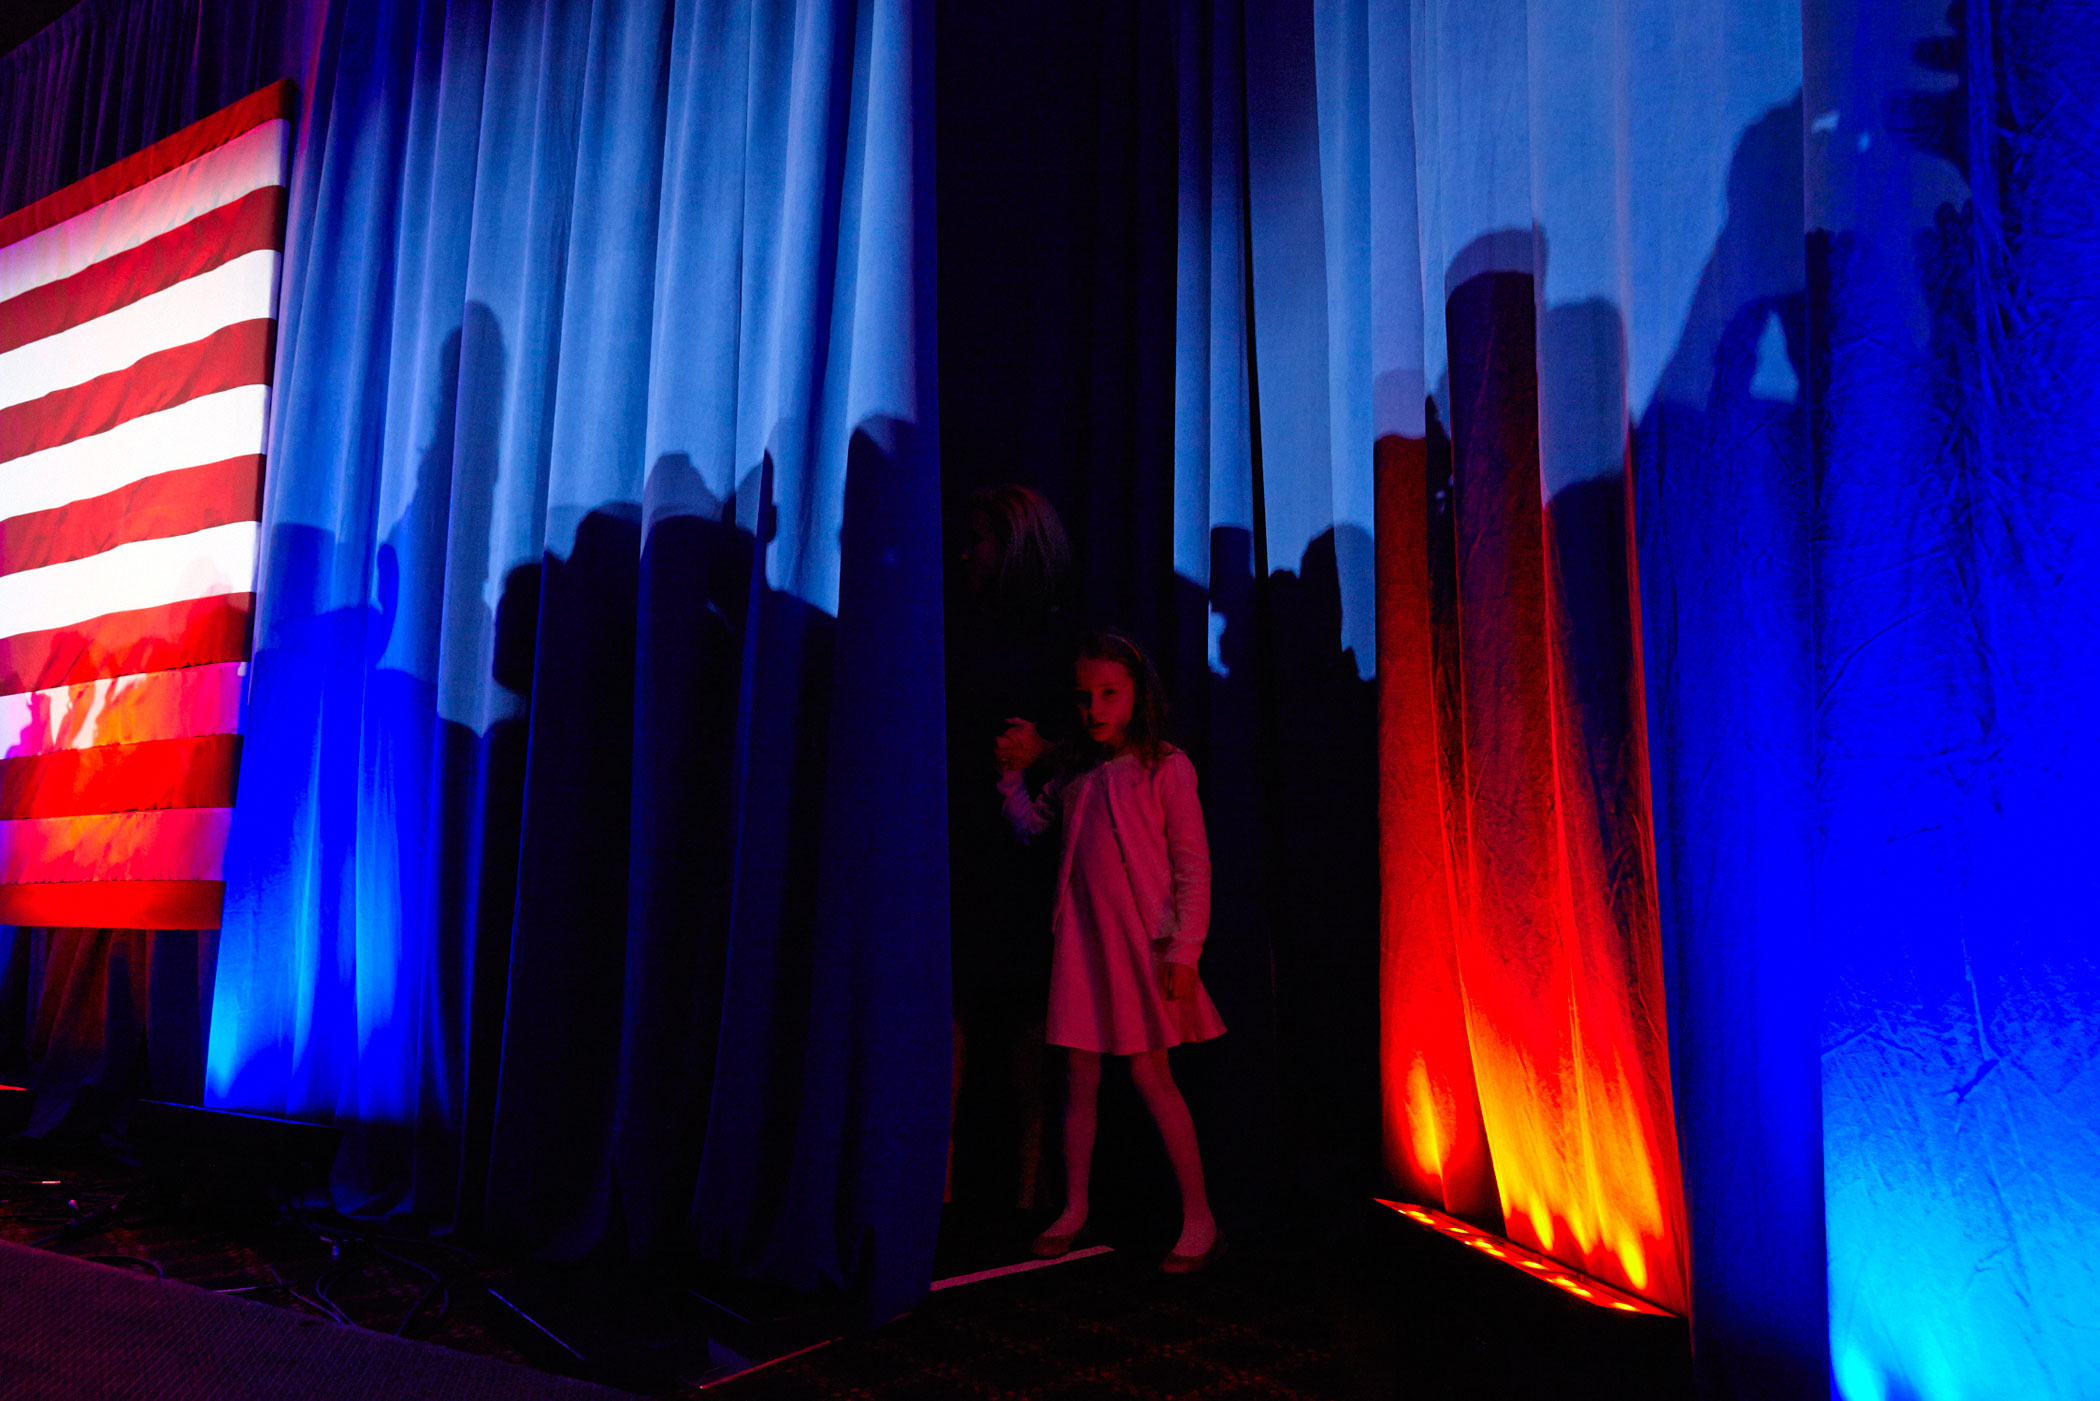 Republican presidential candidate Ted Cruz's daughter peers out from a curtain during the Texas Senator's primary night campaign event on April 5, 2016, in Milwaukee.